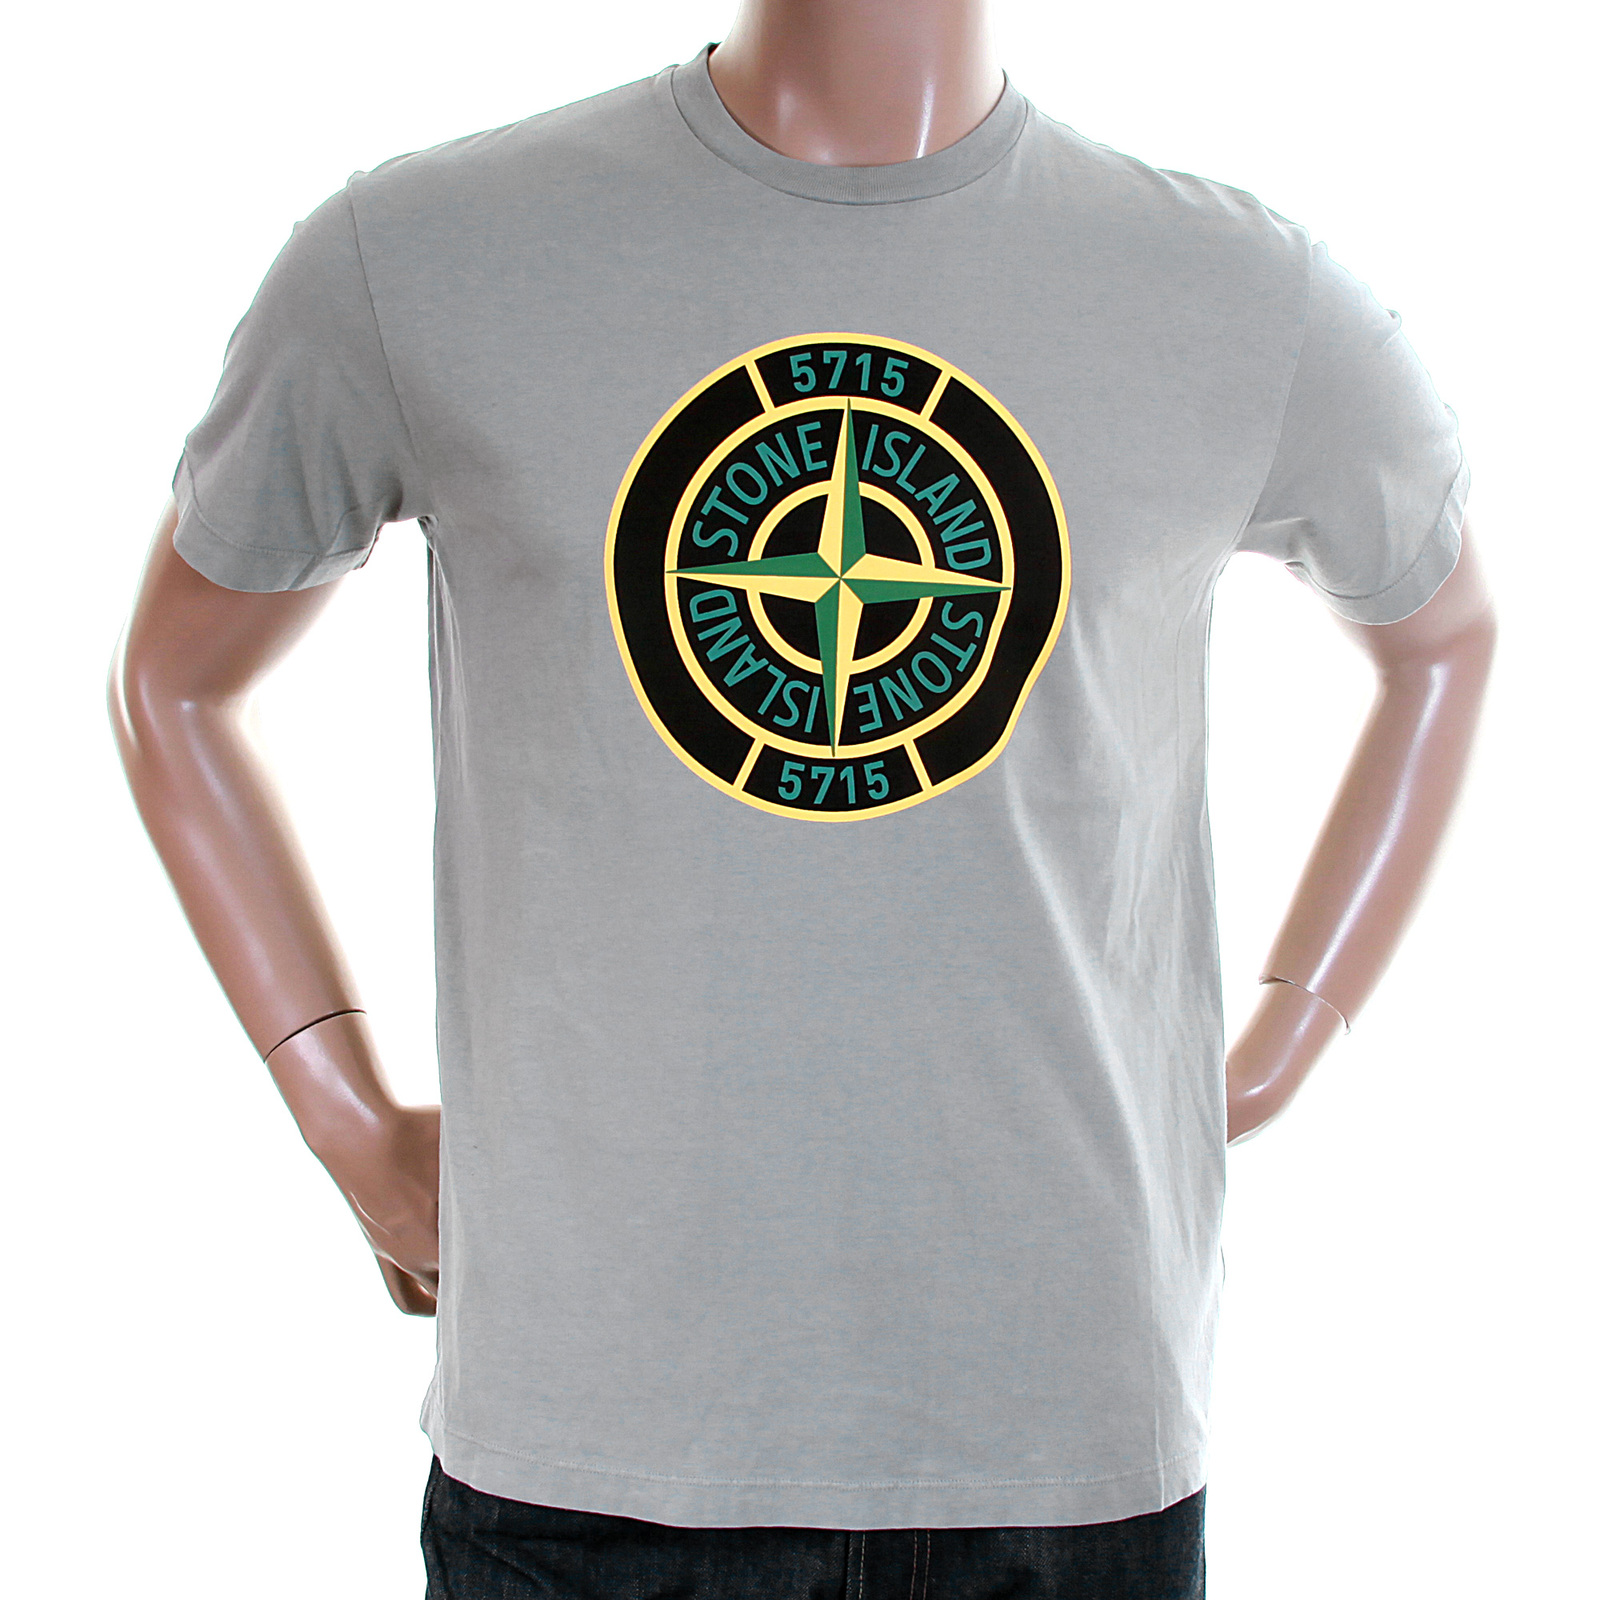 Stone island mens grey 561520181 compass logo tee shirt for Shirts with small logos